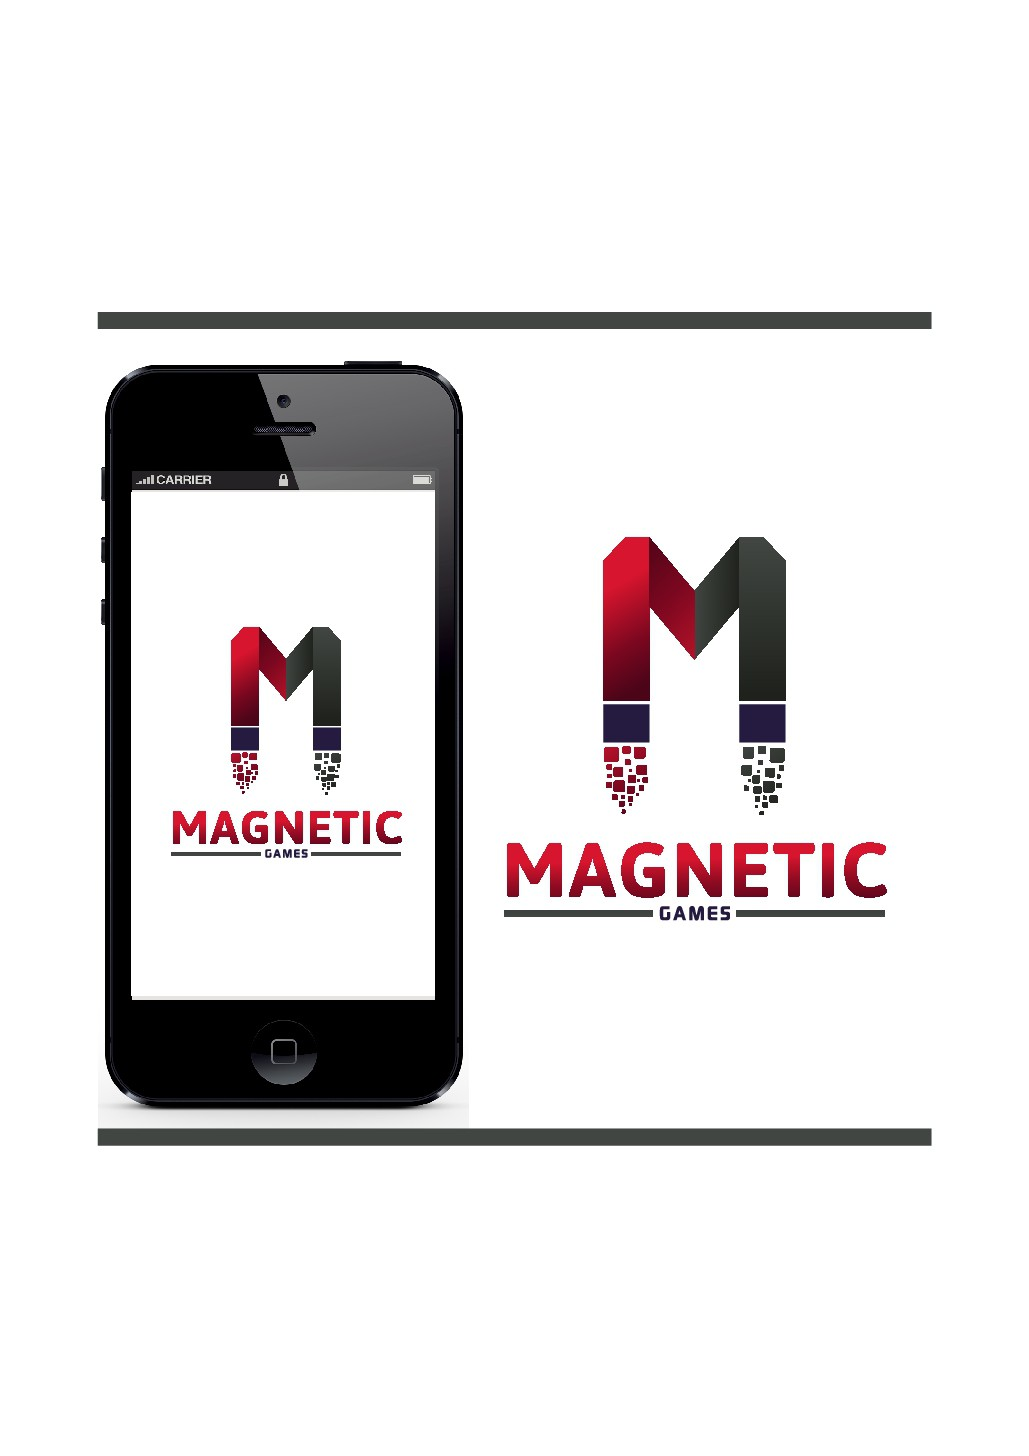 Mobile Gaming Company needs a Magnetic Logo